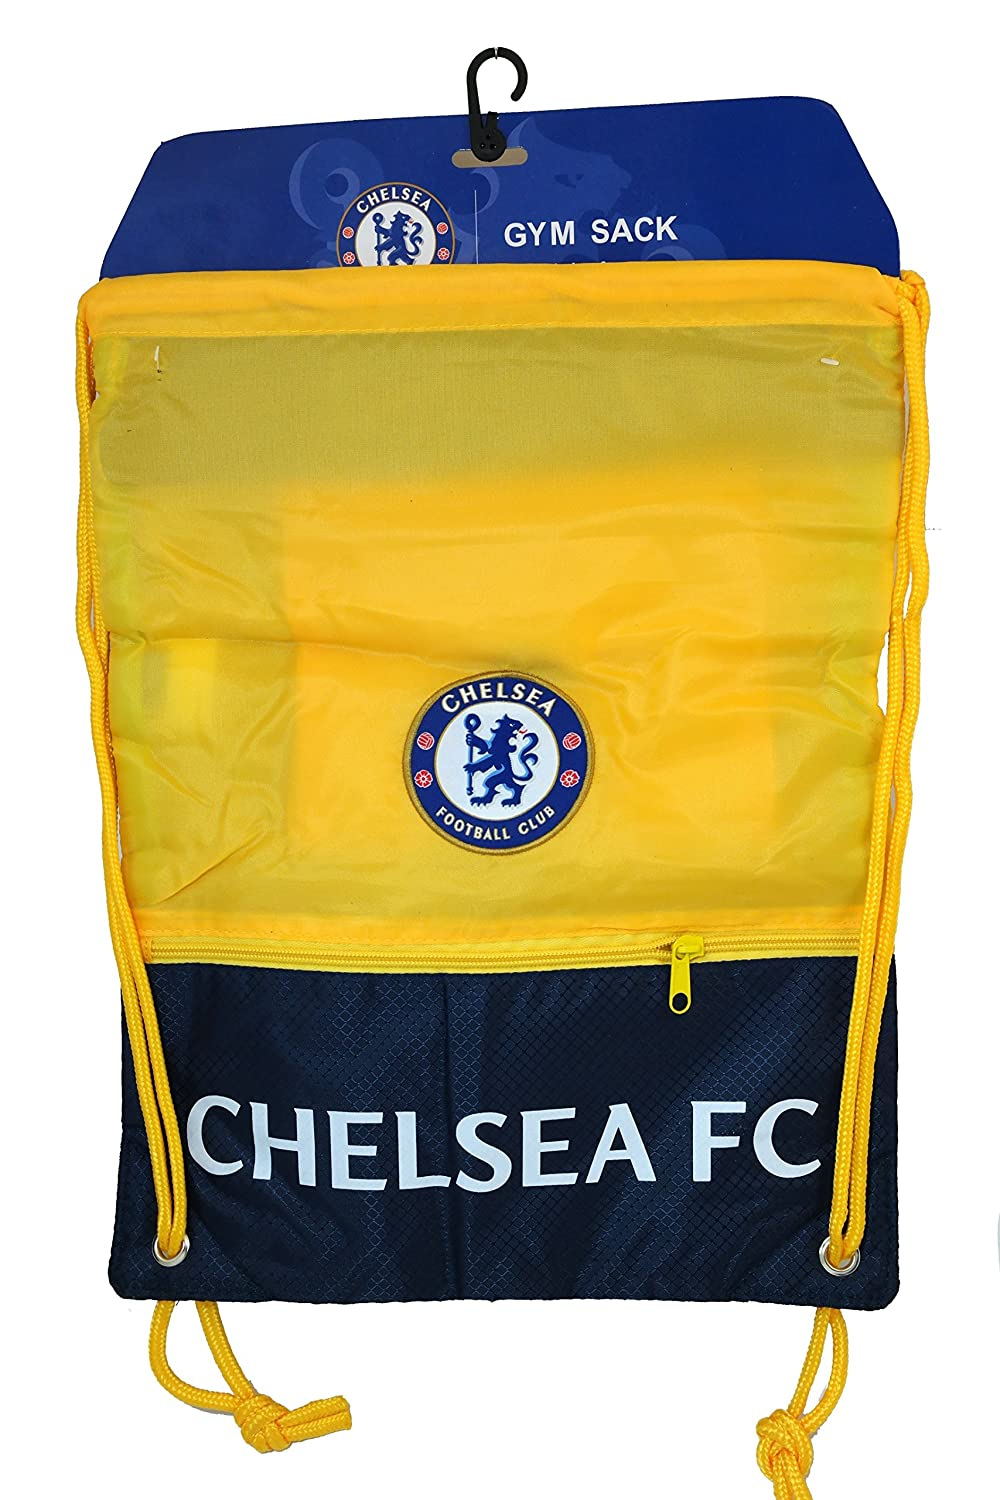 FC Chelsea Authentic Official Licensed Soccer Drawstring Cinch Sack Bag 02  high-quality 4b207c46b2f6a